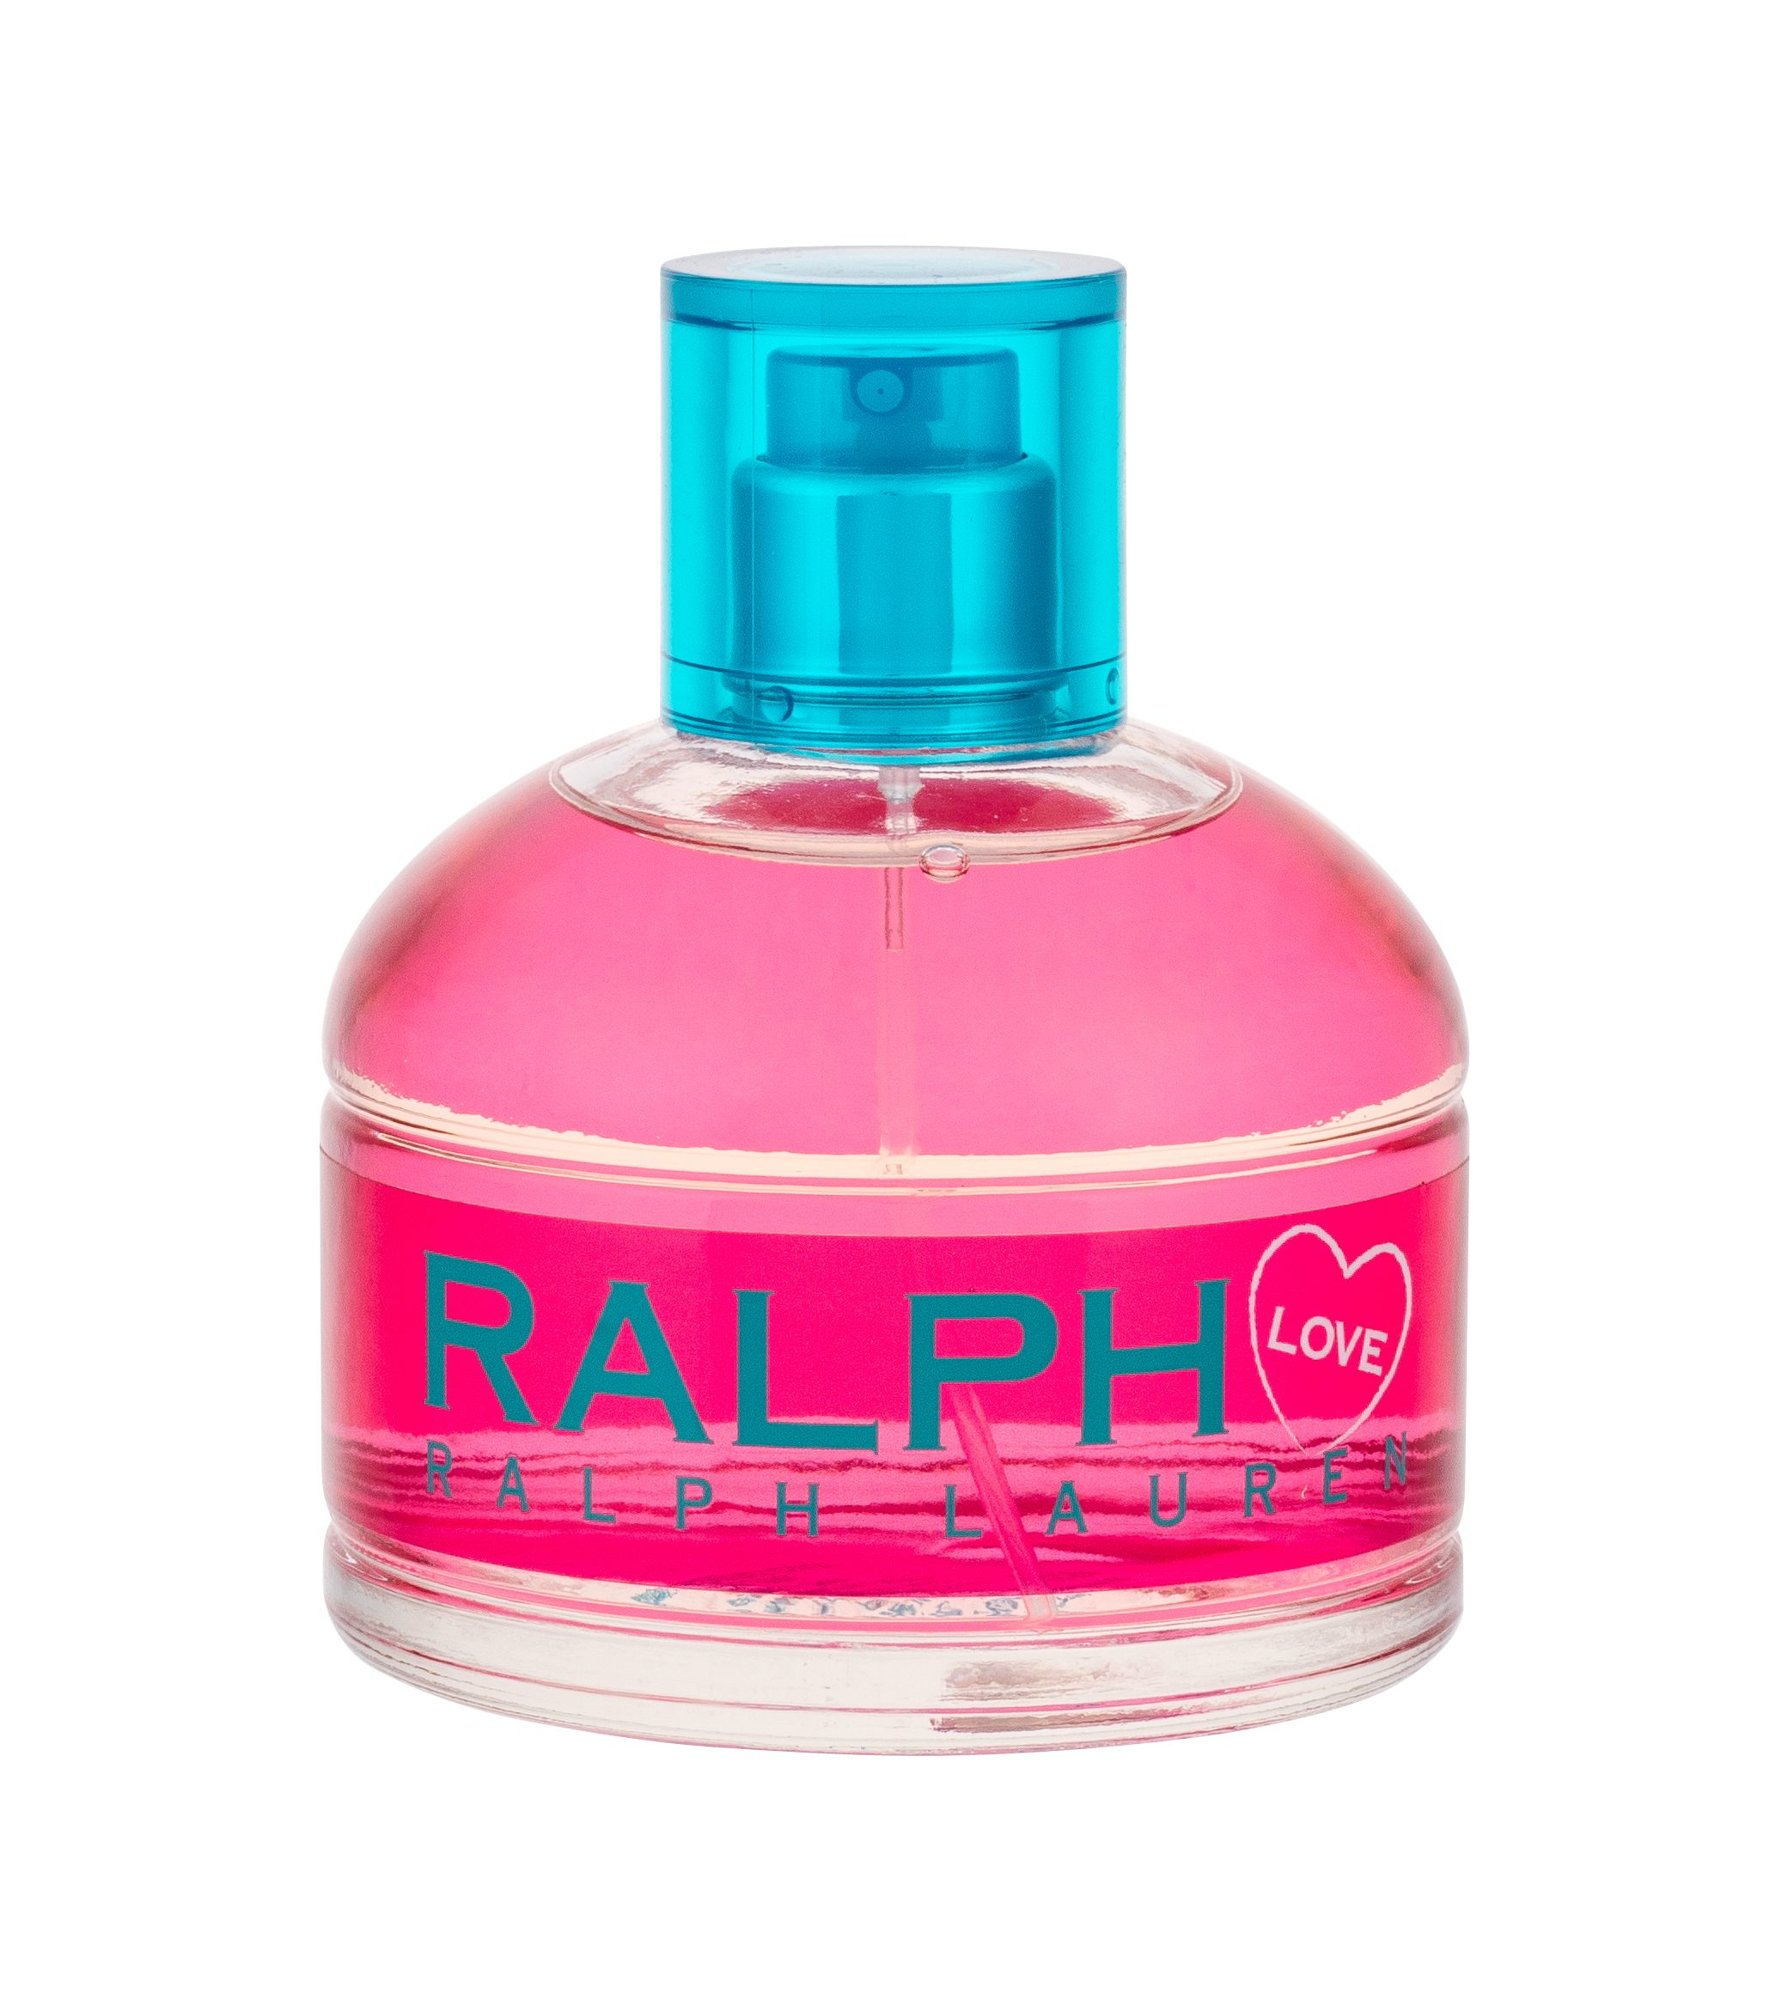 Ralph Lauren Ralph Love Eau de Toilette 100ml